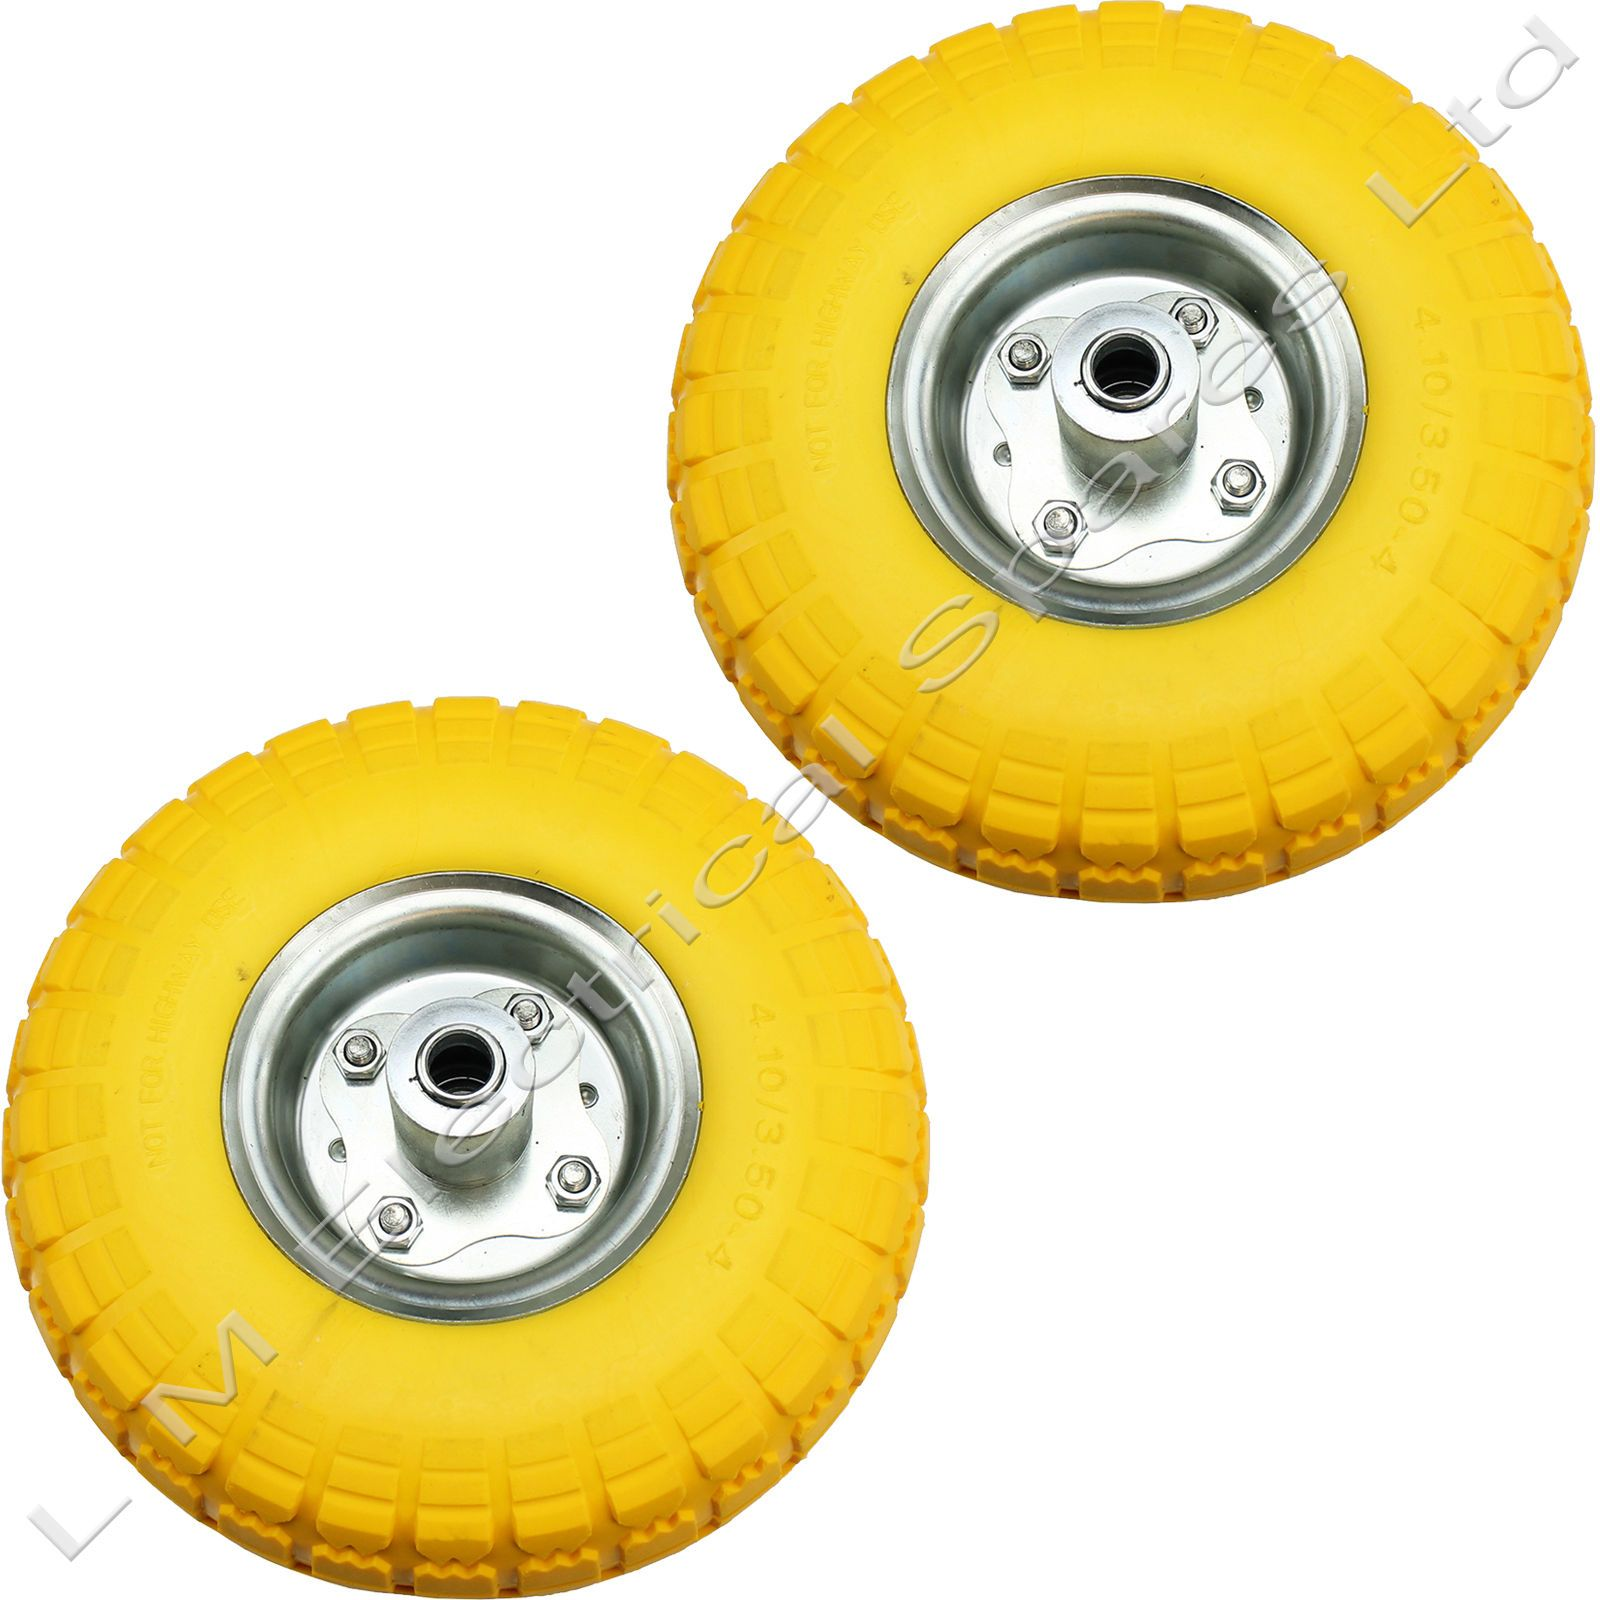 """4 x 10/"""" Puncture Burst Proof Solid Rubber Sack Truck Trolley Wheels Tyres NEW"""